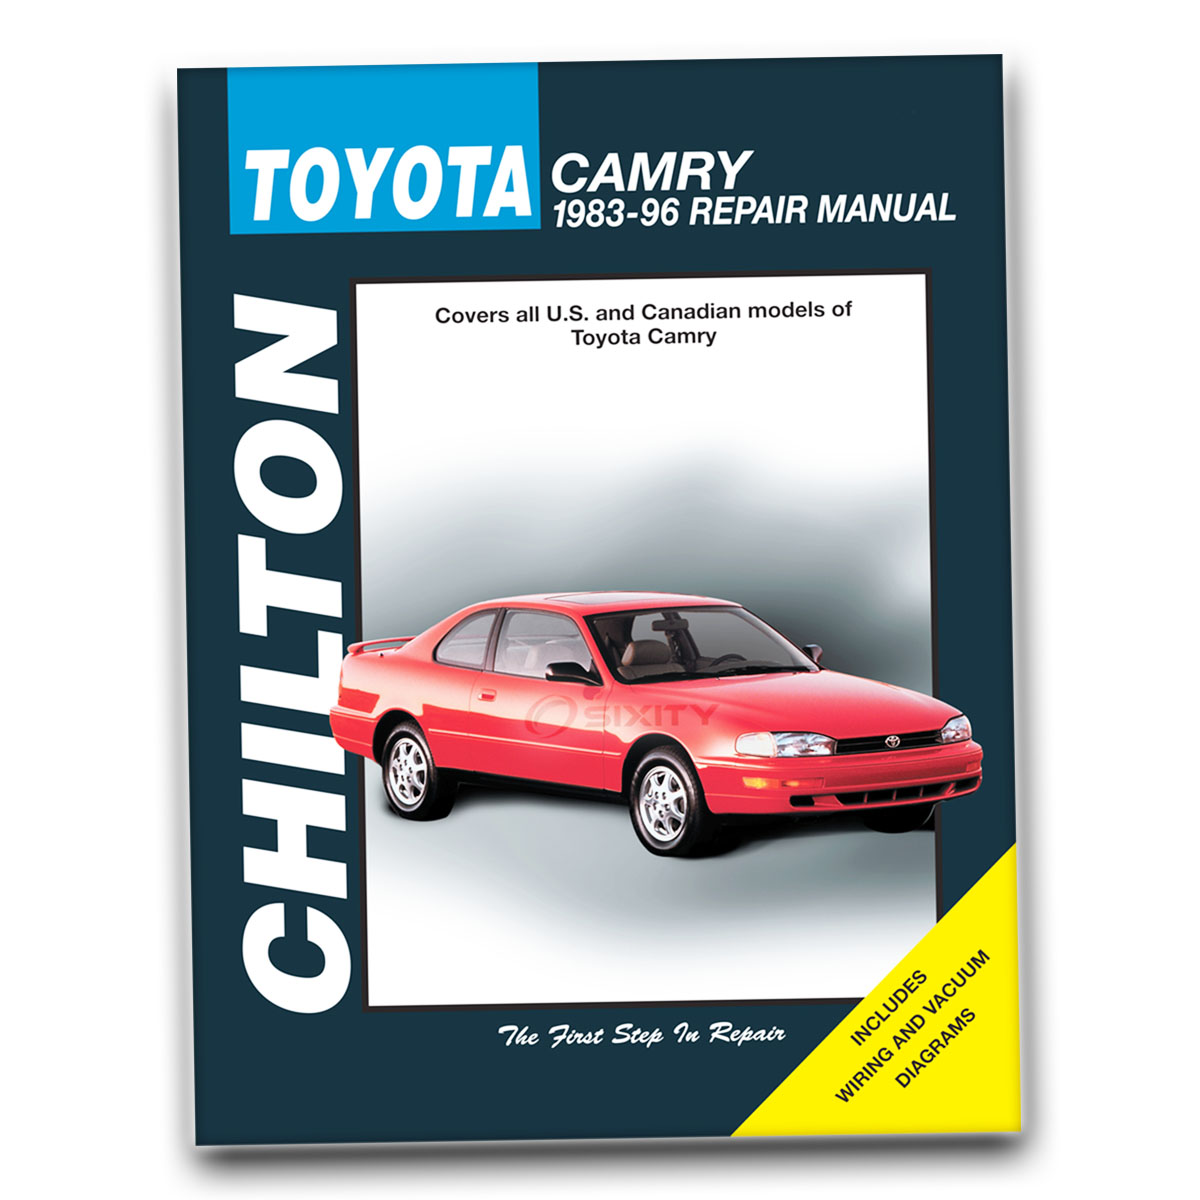 chilton toyota camry 1983 96 repair manual 68200 shop service garage book fp ebay. Black Bedroom Furniture Sets. Home Design Ideas